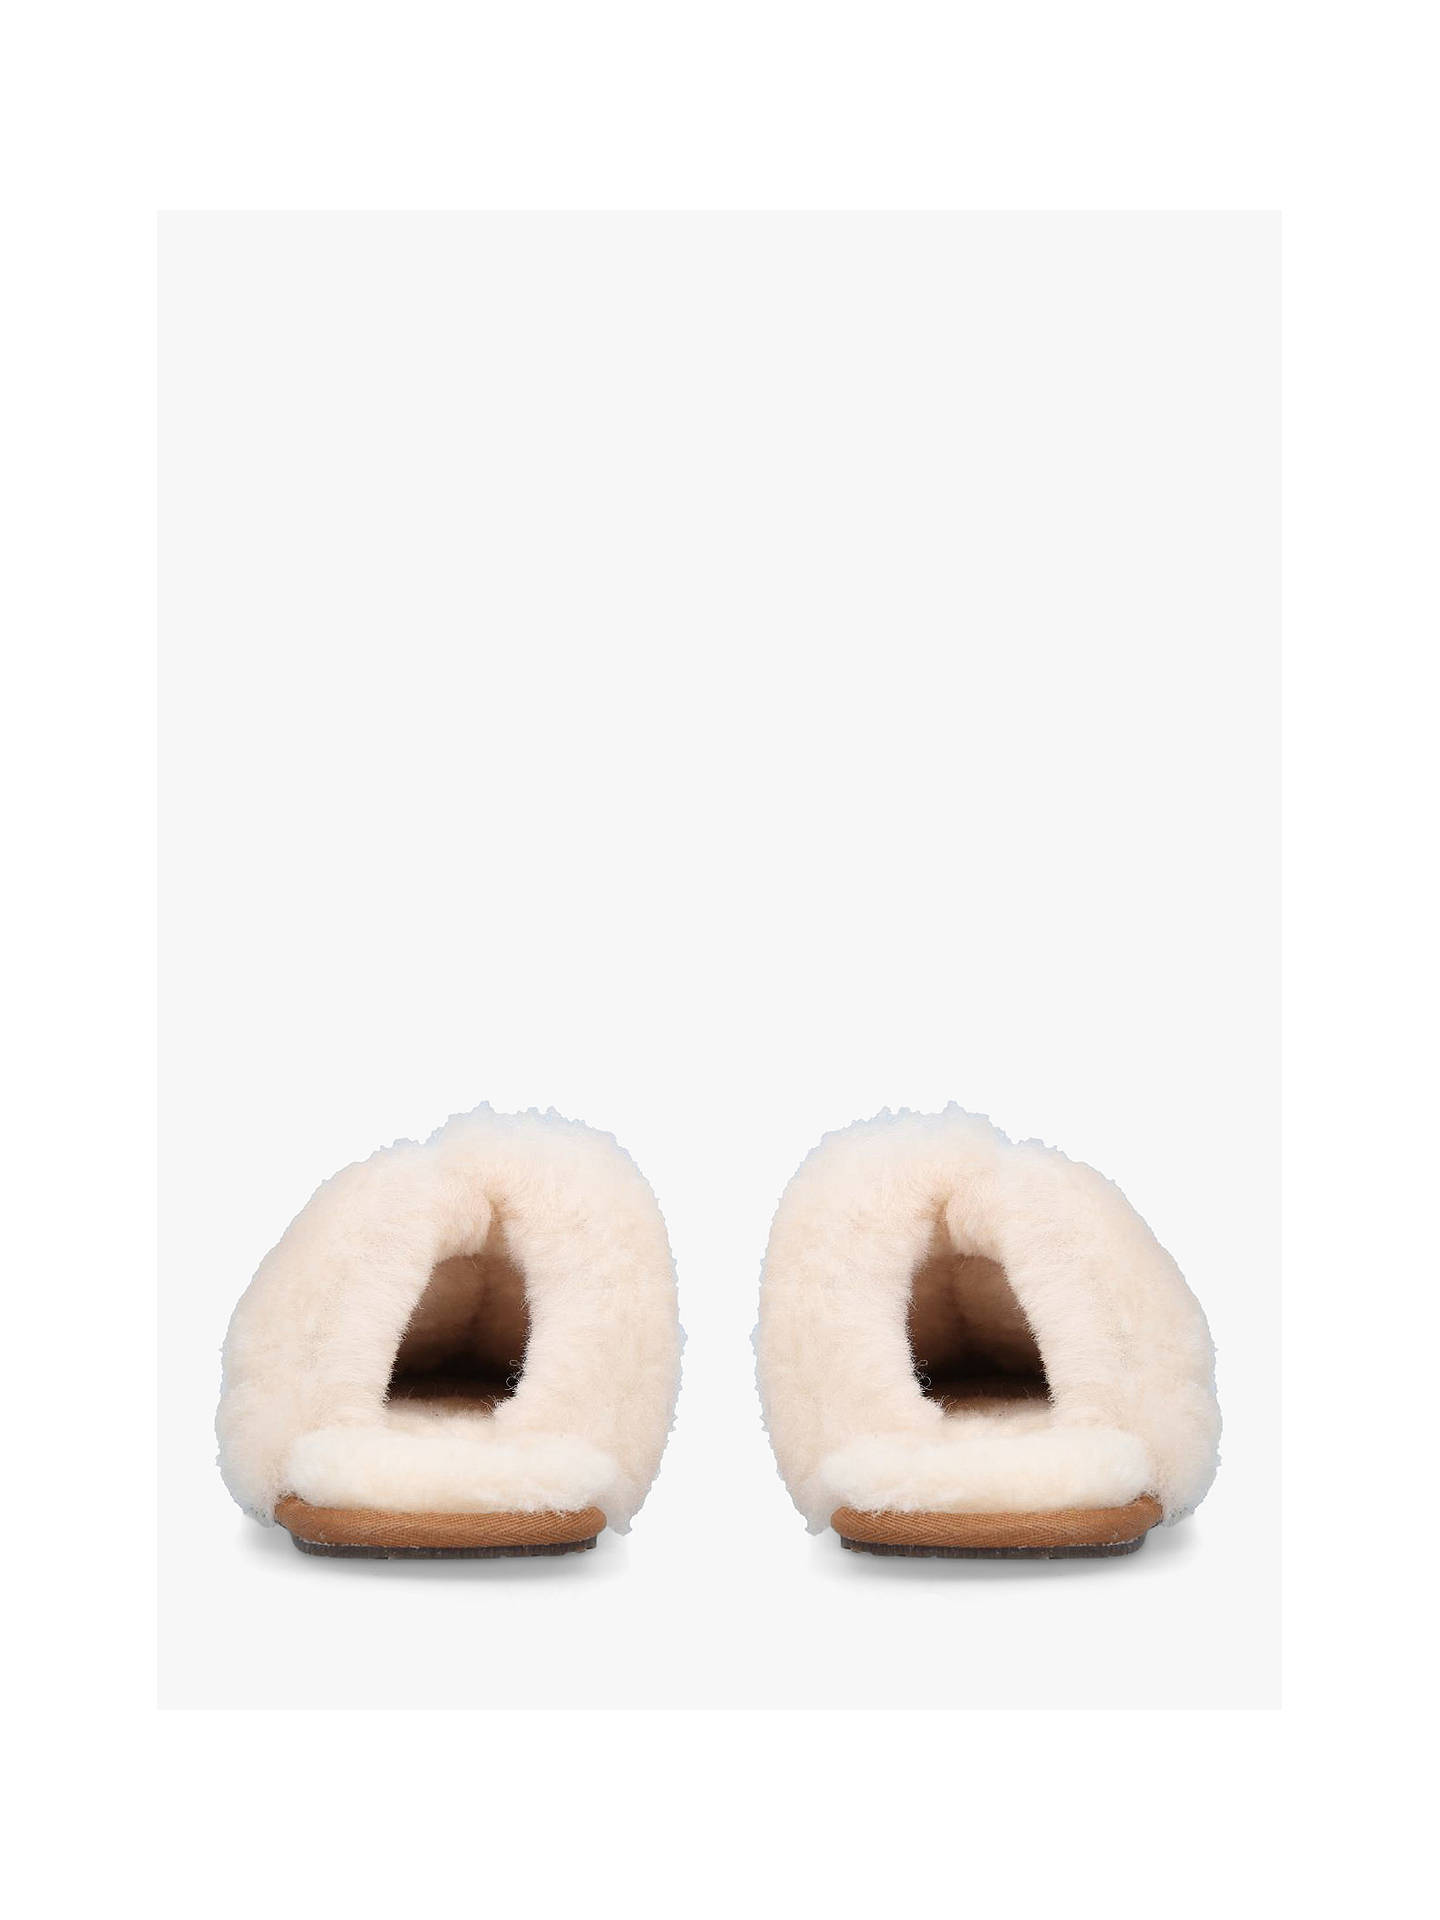 Buy UGG Scuffette II Sheepskin Slippers, Brown, 4 Online at johnlewis.com